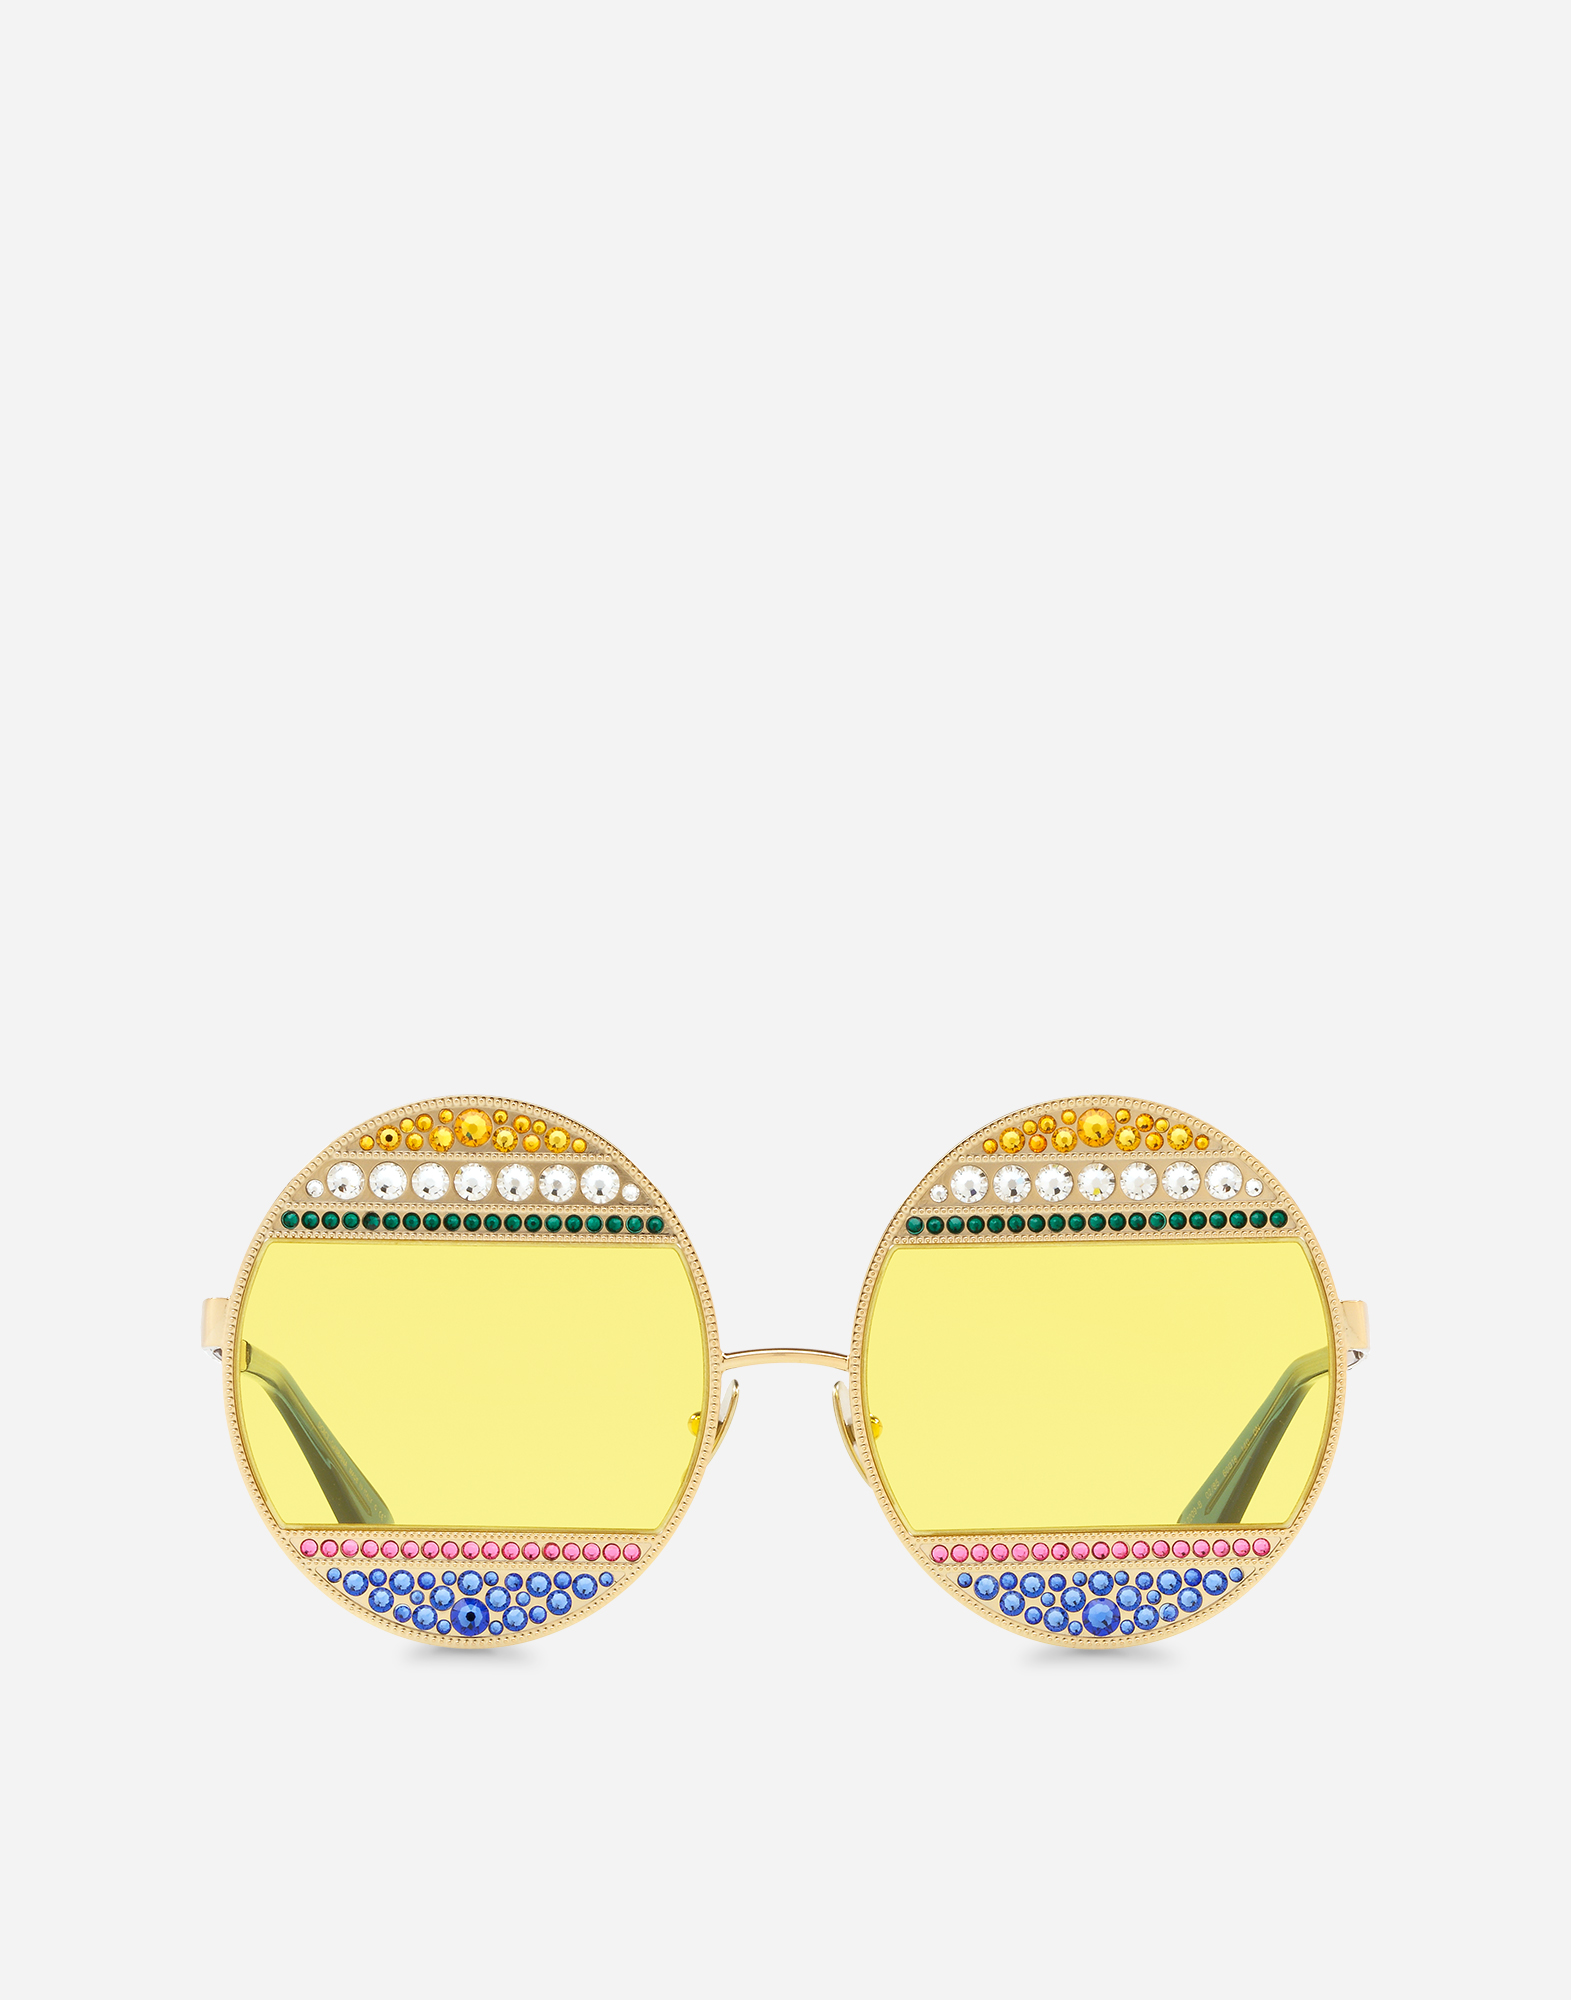 Dolce & Gabbana OVAL METAL SUNGLASSES WITH CRYSTALS